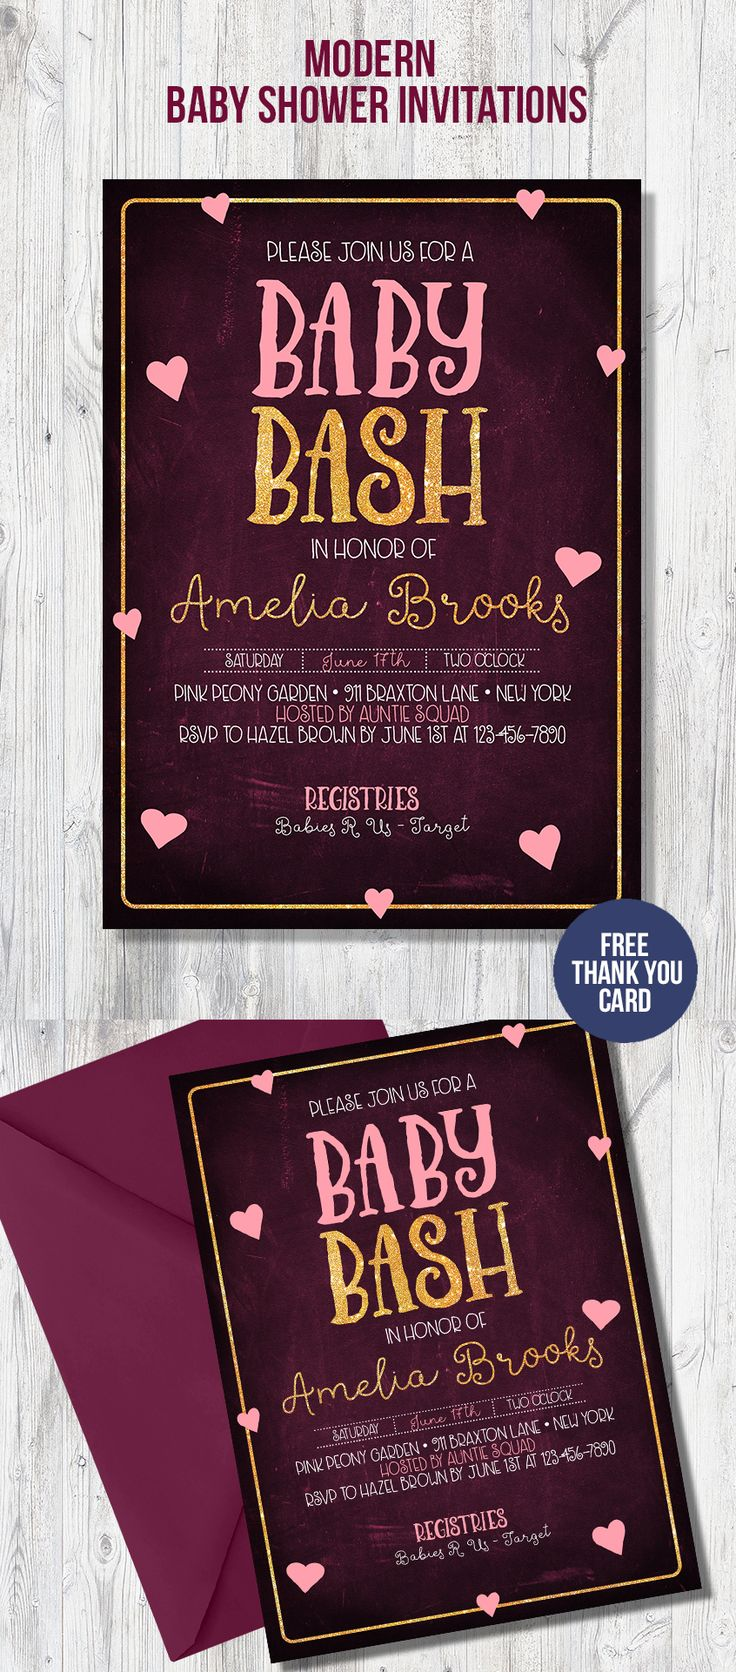 baby shower bbq invitation templates%0A Baby shower invitation for your DIY baby shower  We offer matching party  decorations and games